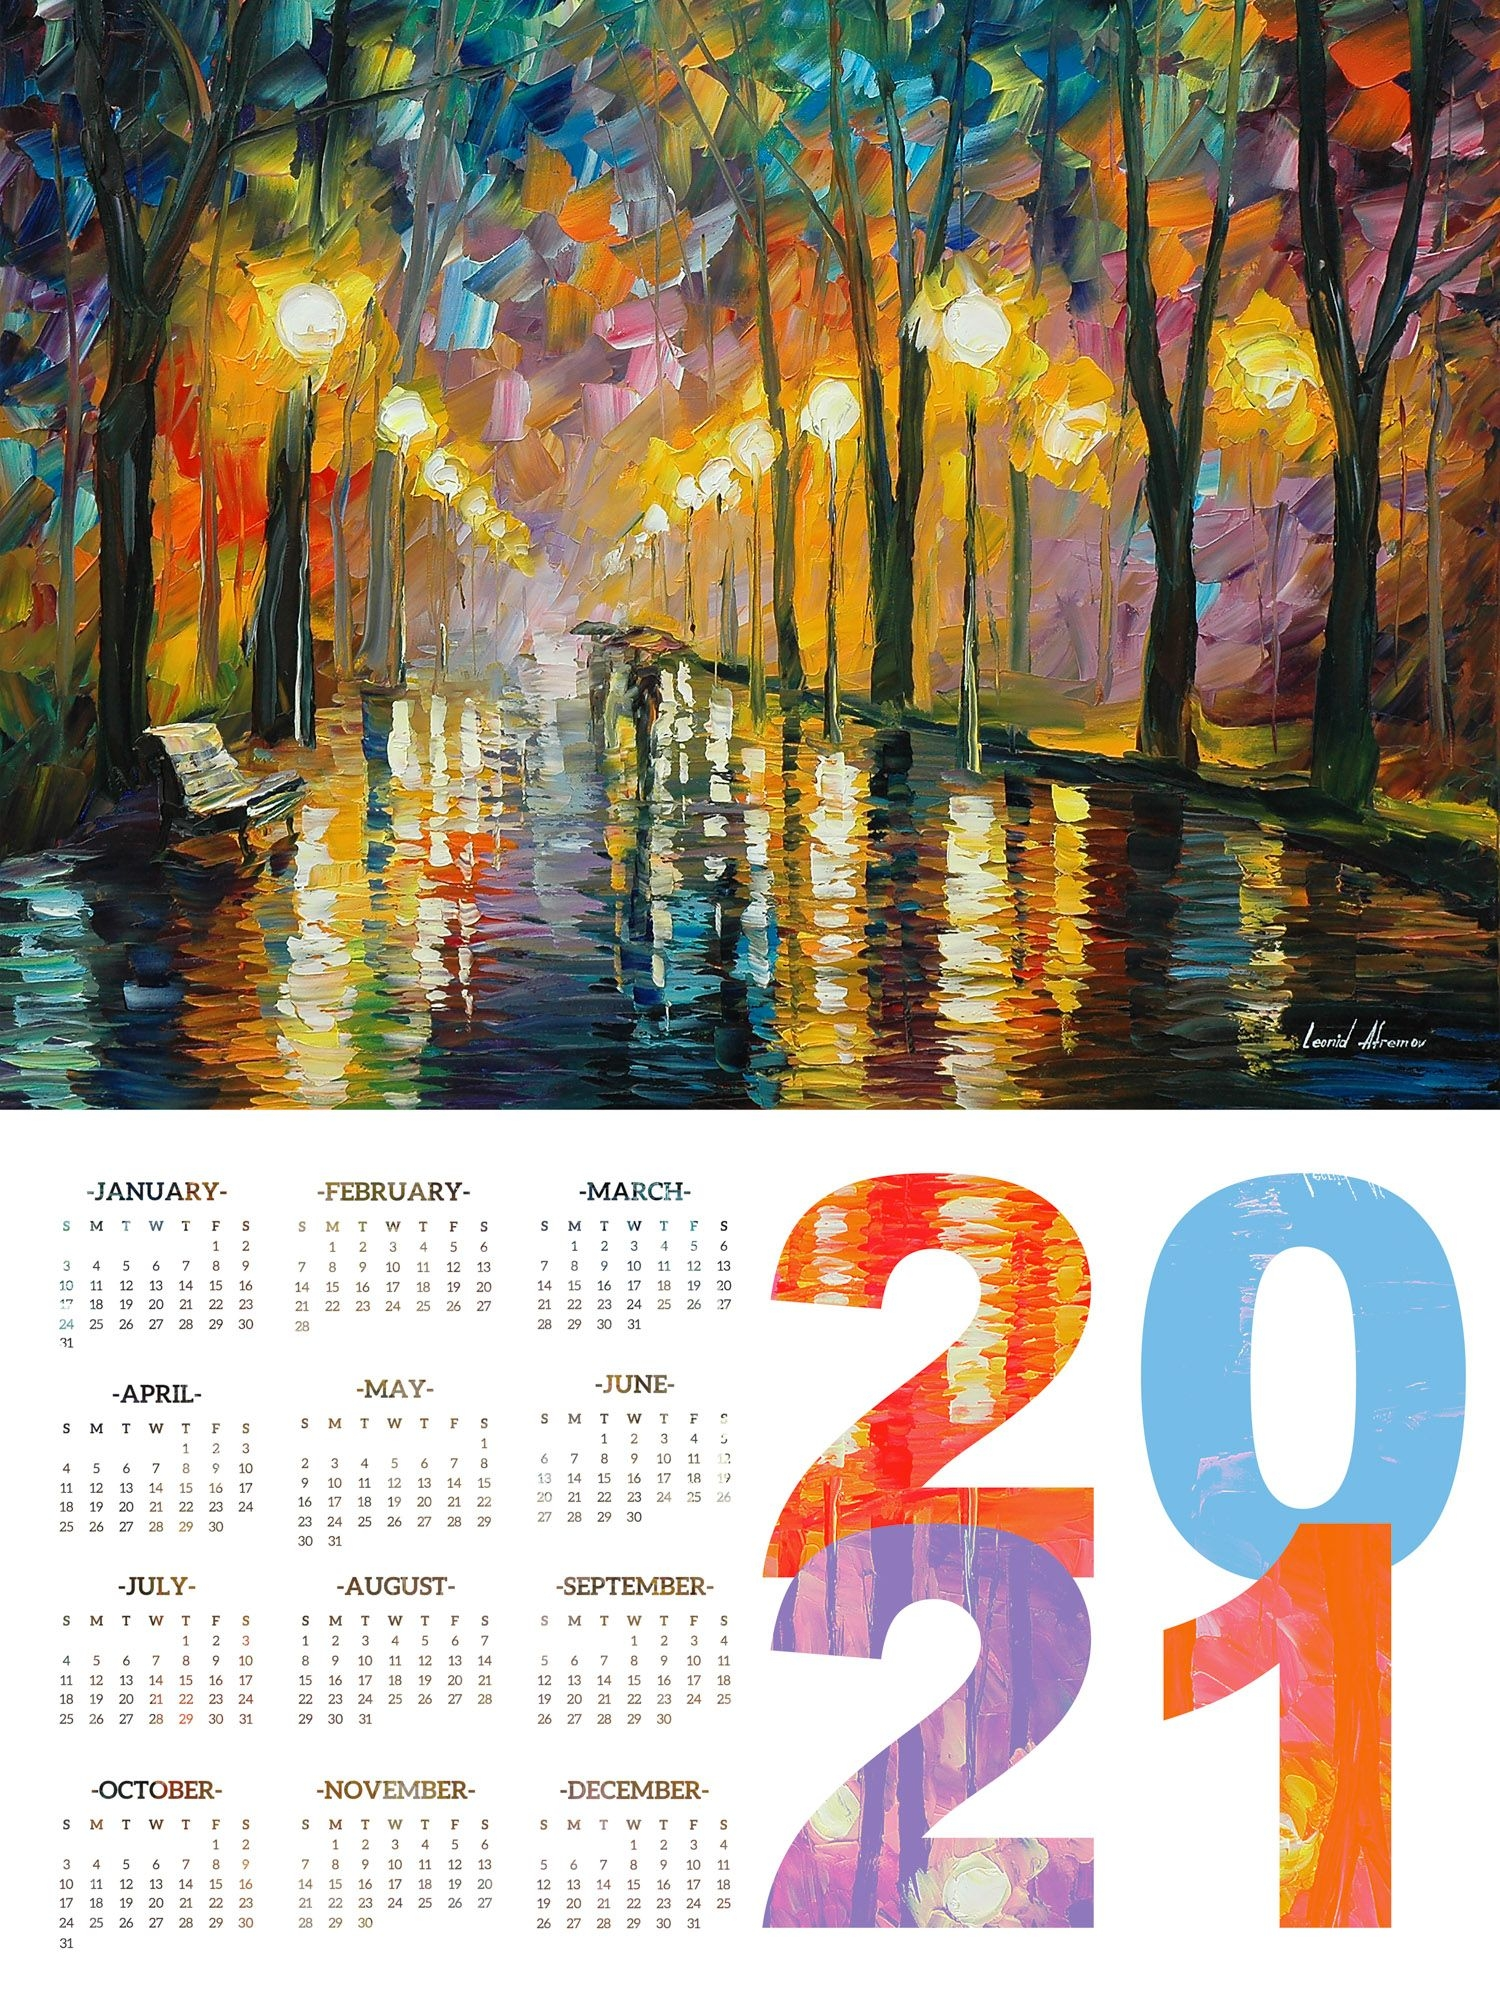 Calendar 2021 - Print On High Quality Artistic Canvas